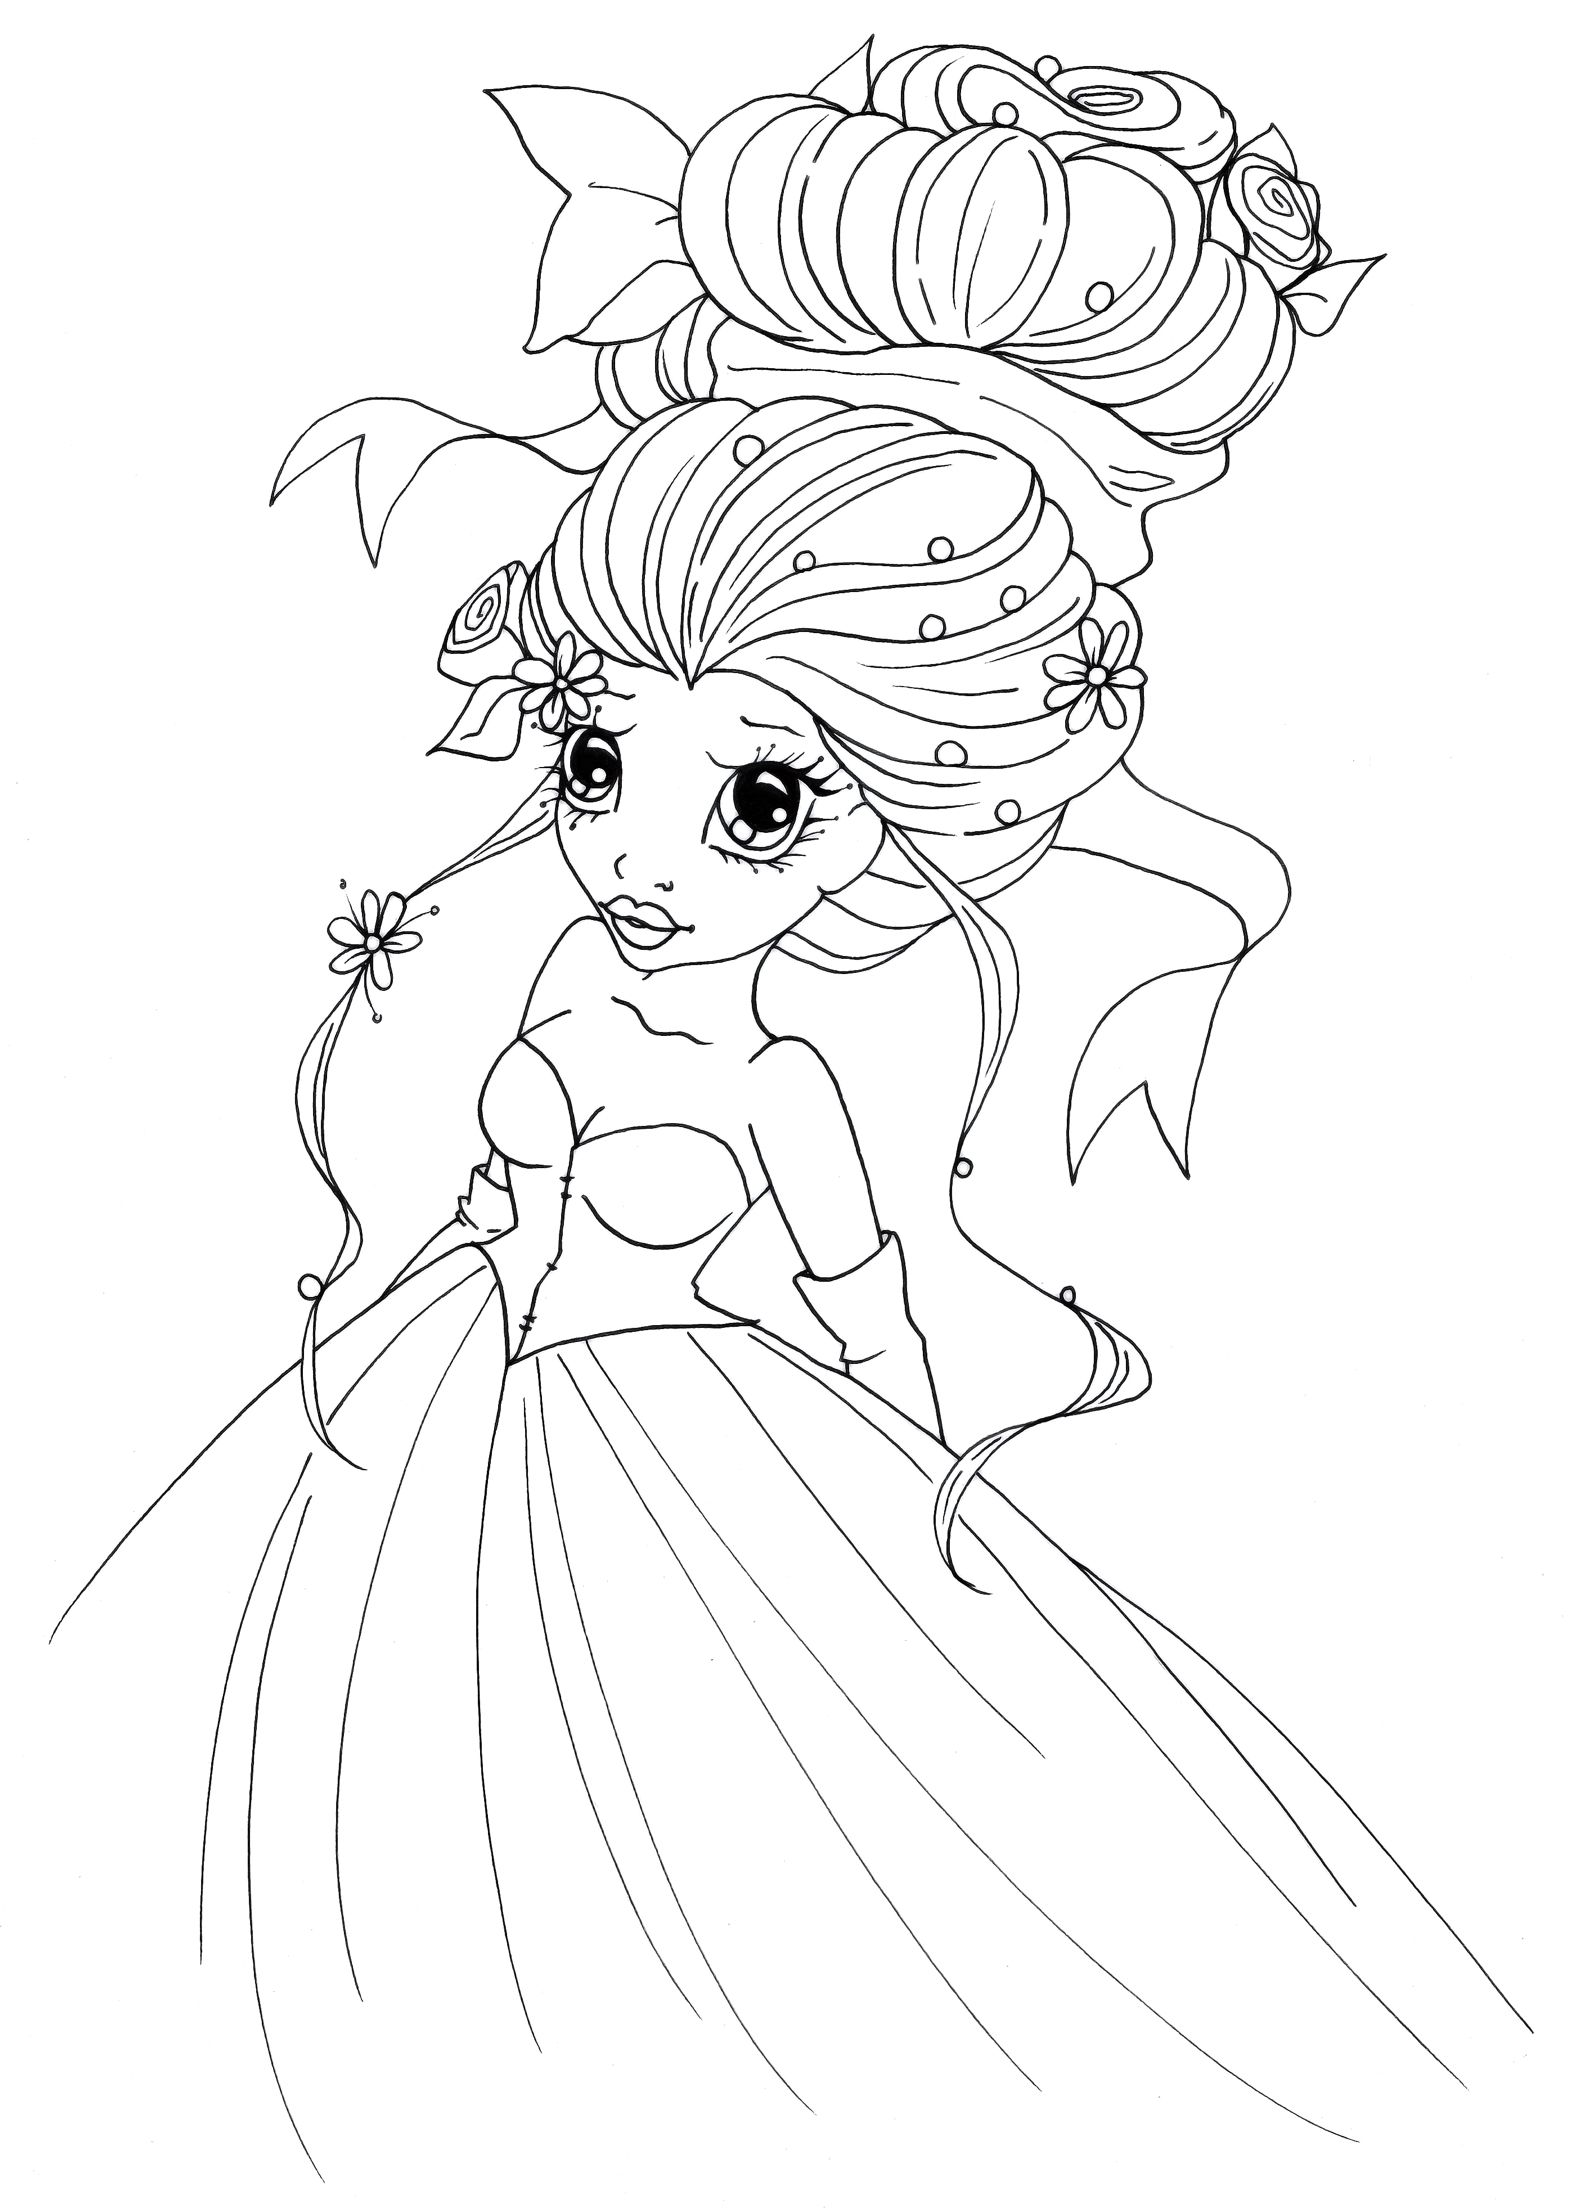 Card Making Free Digi Cool Coloring Pages Digi Stamps Coloring Pages